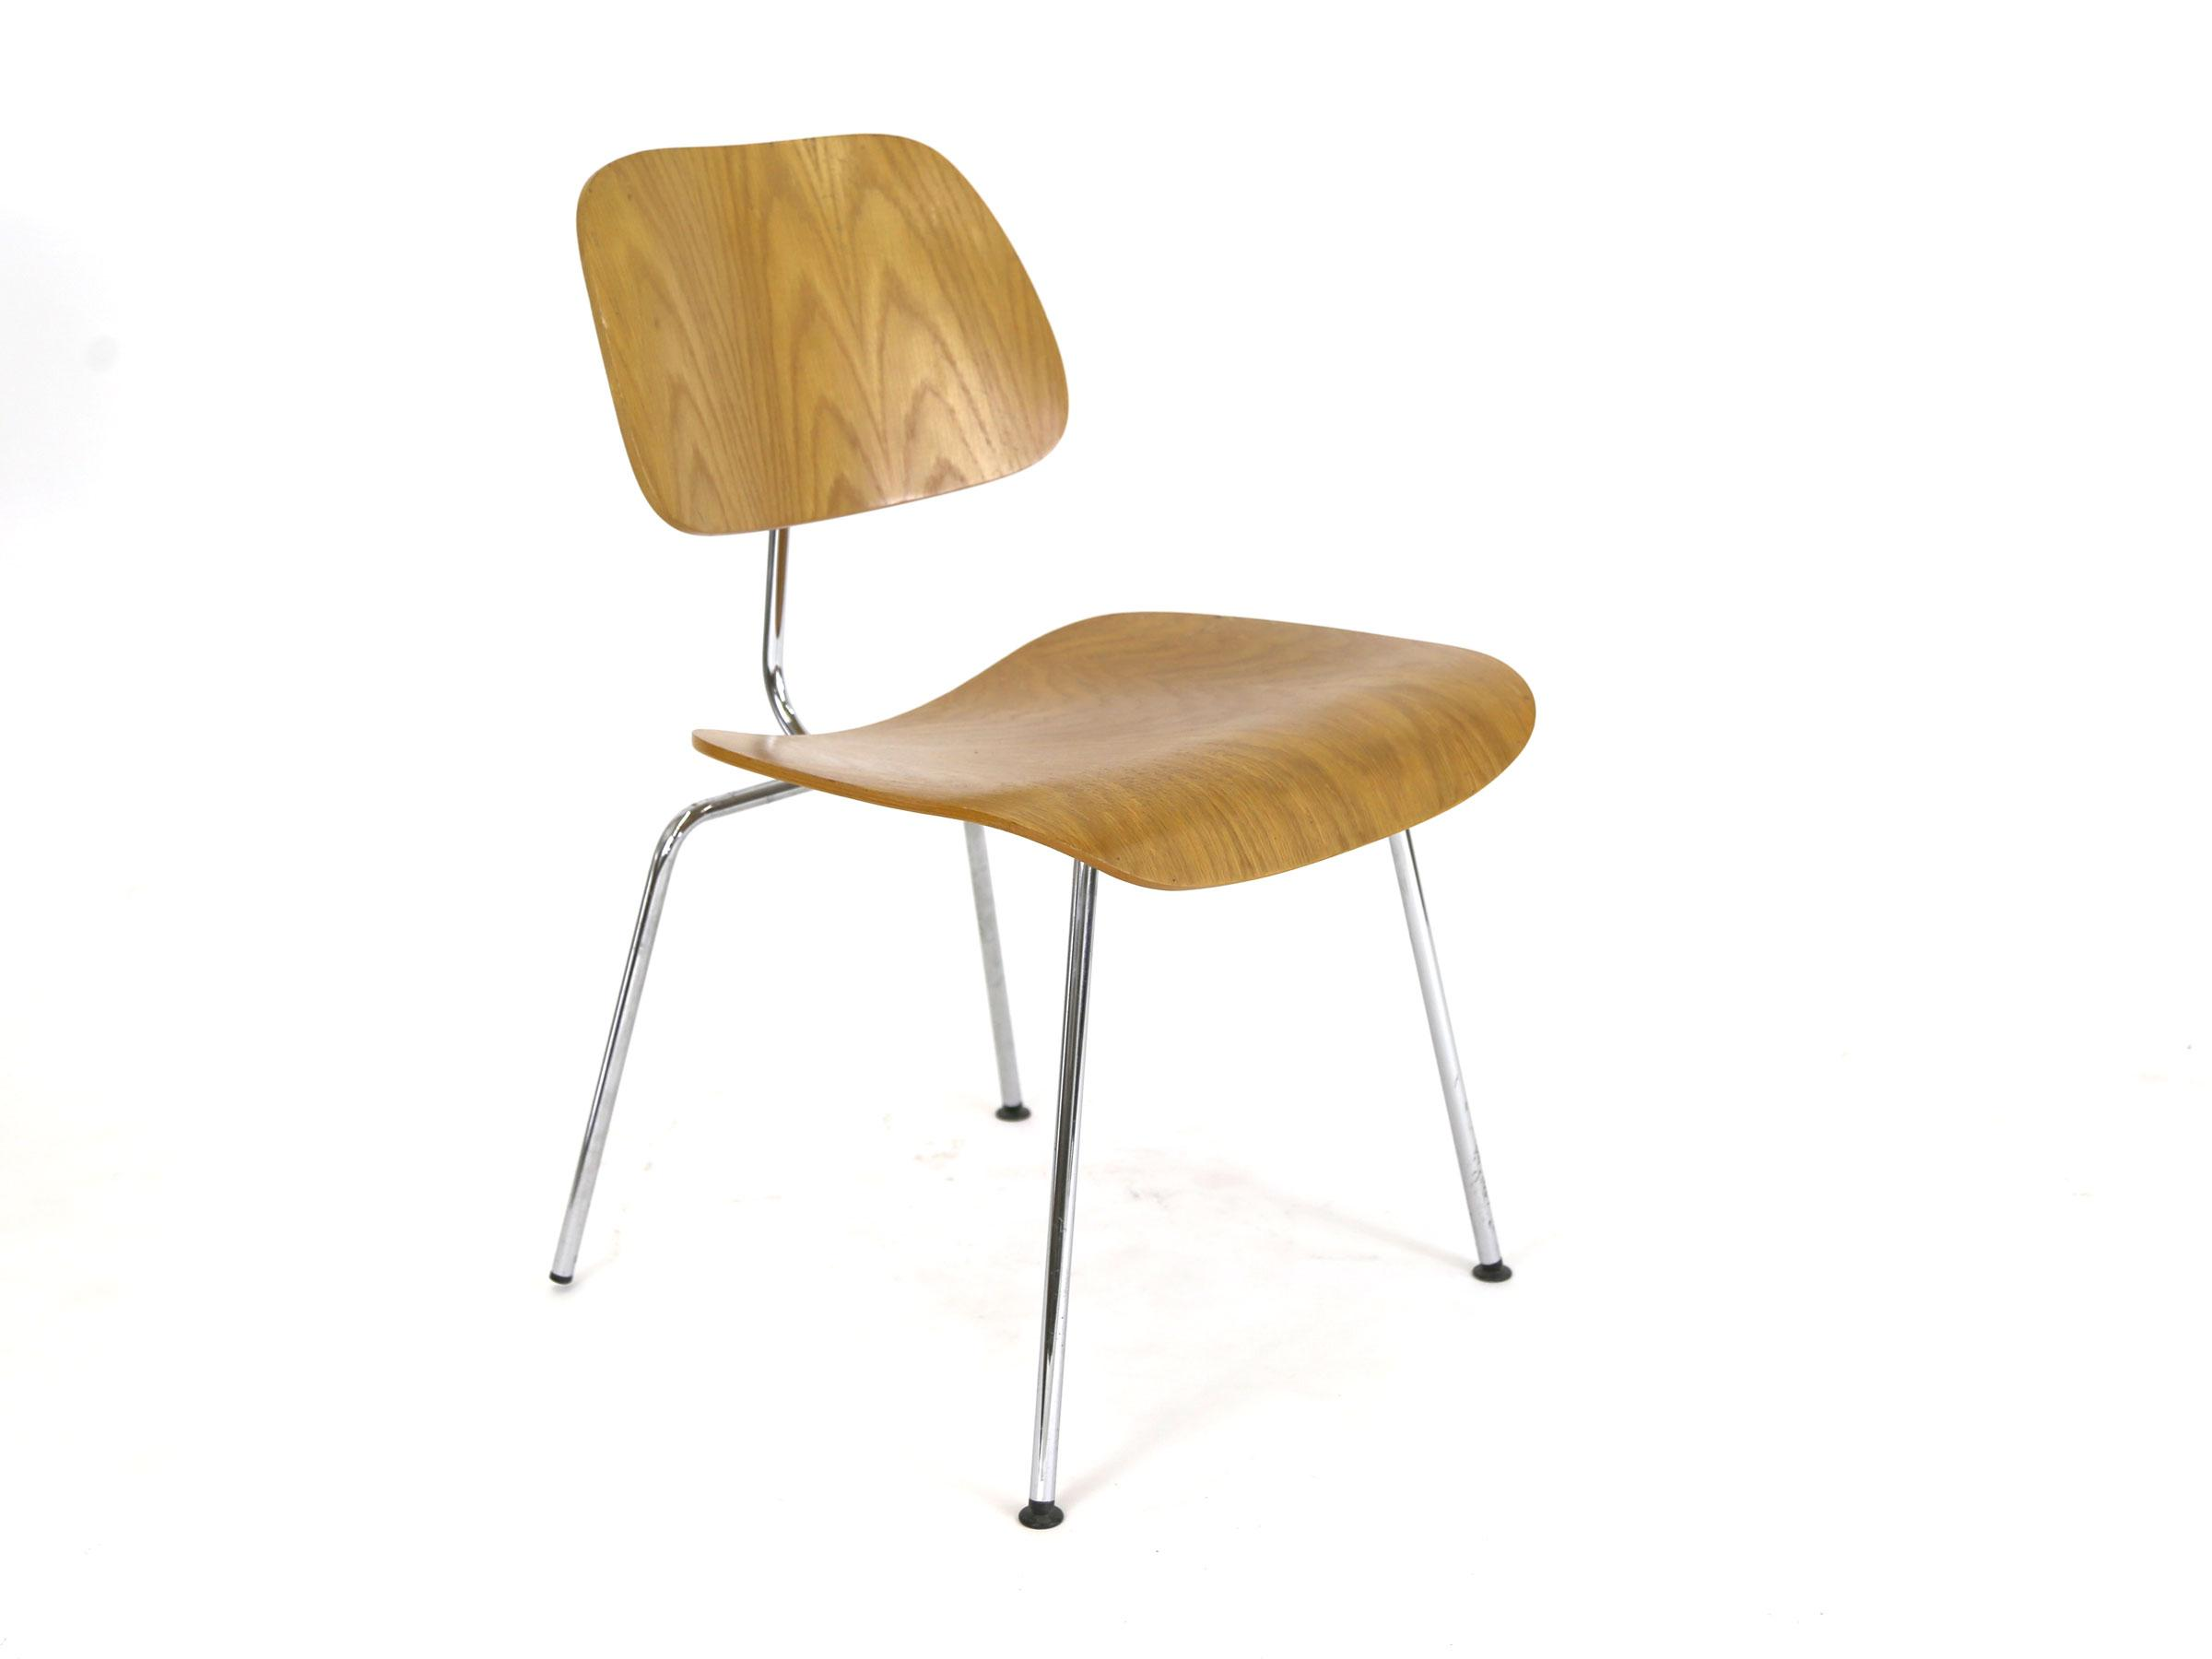 Vintage Eames Chair Molded Plywood Reproduction